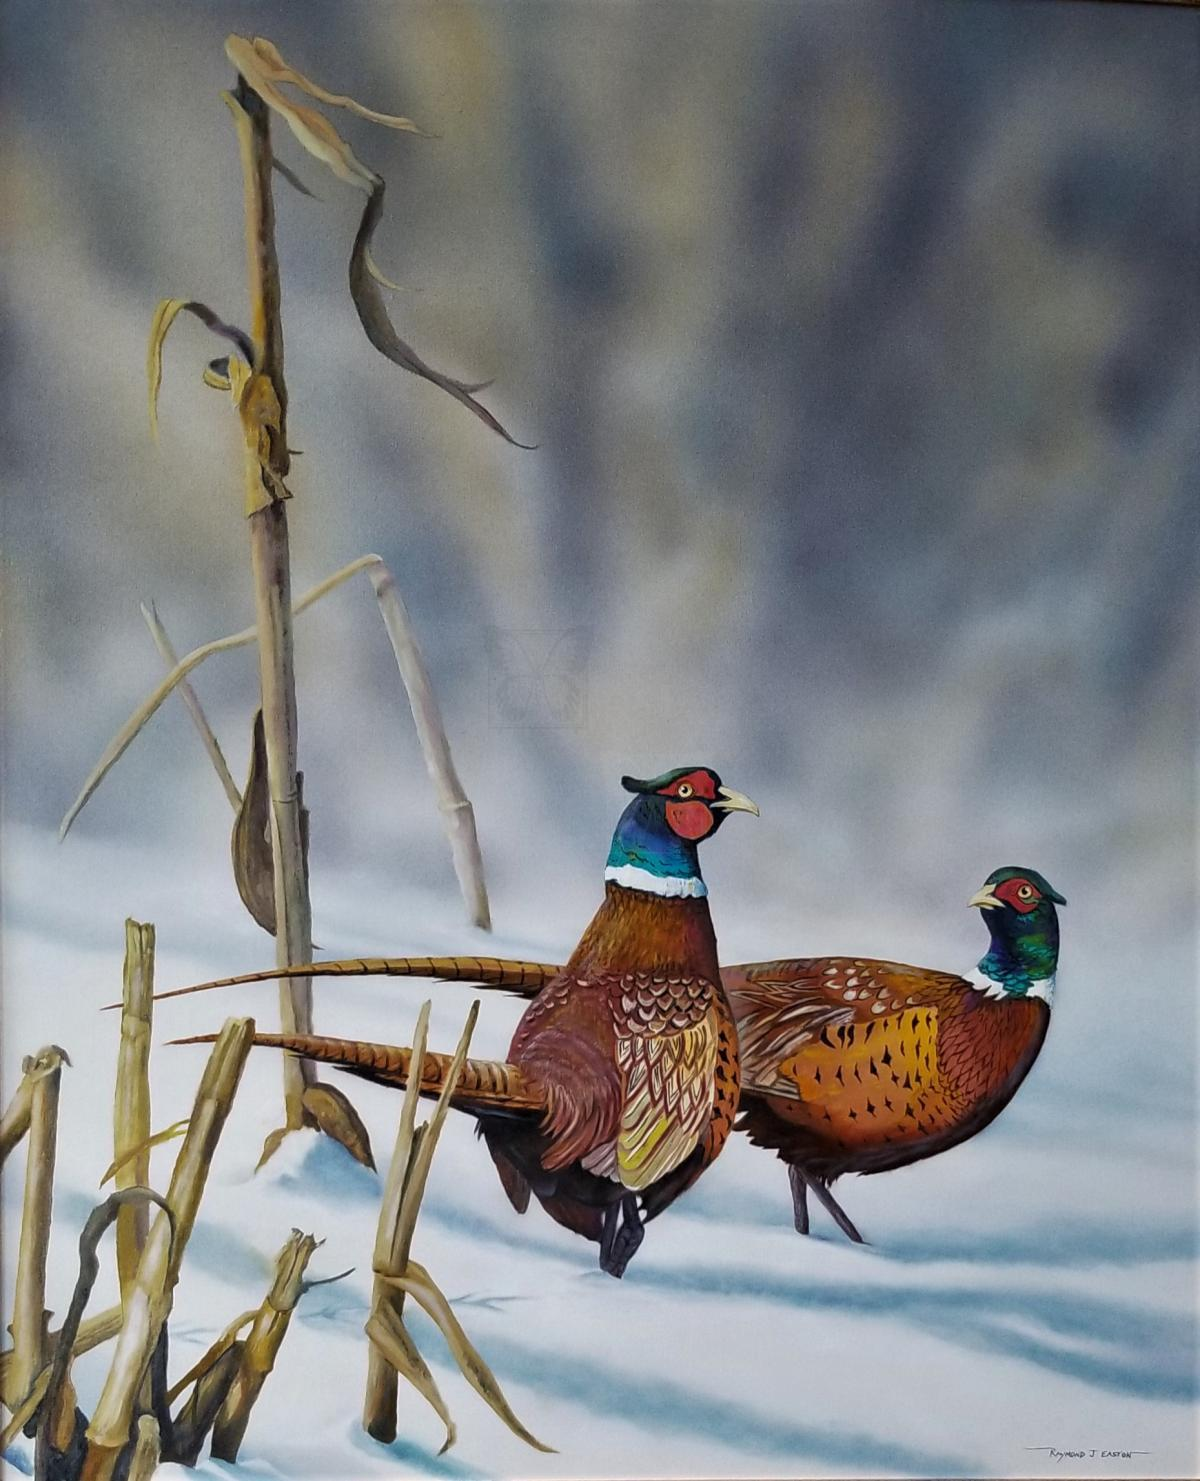 Add Artwork | Wallhanging by Ray Easton | Artists for Conservation